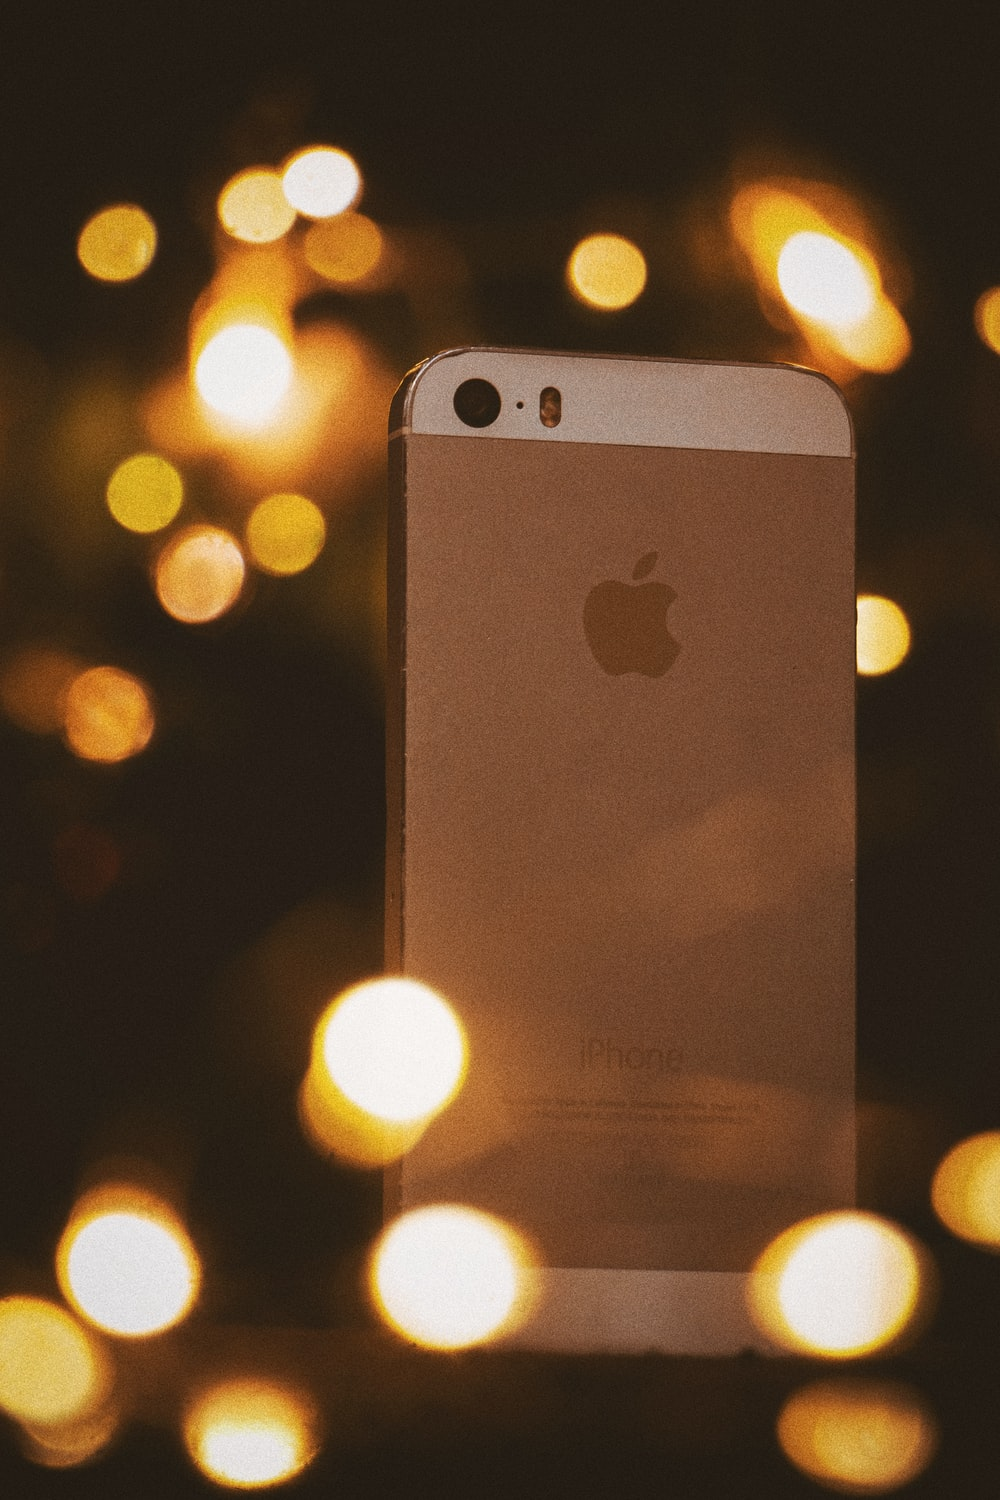 gold iphone 6 on bokeh photography